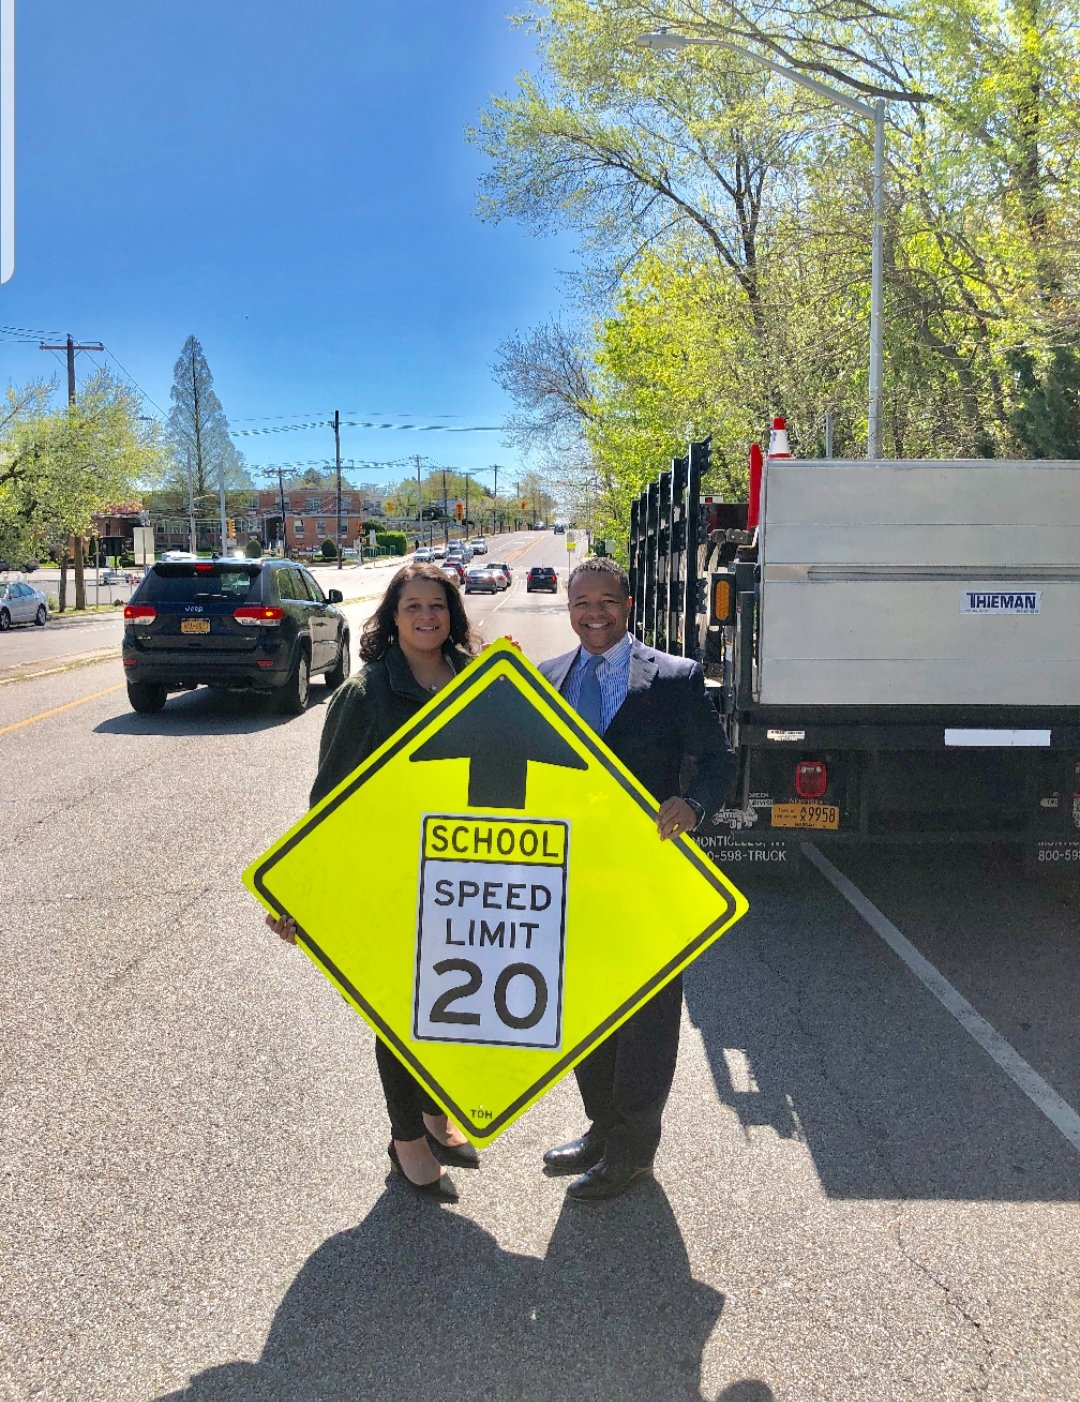 New York State Assemblywoman Michaelle Solages and Nassau County Legislator Carrie Solages helped install the new school zone sign by Astor Street.